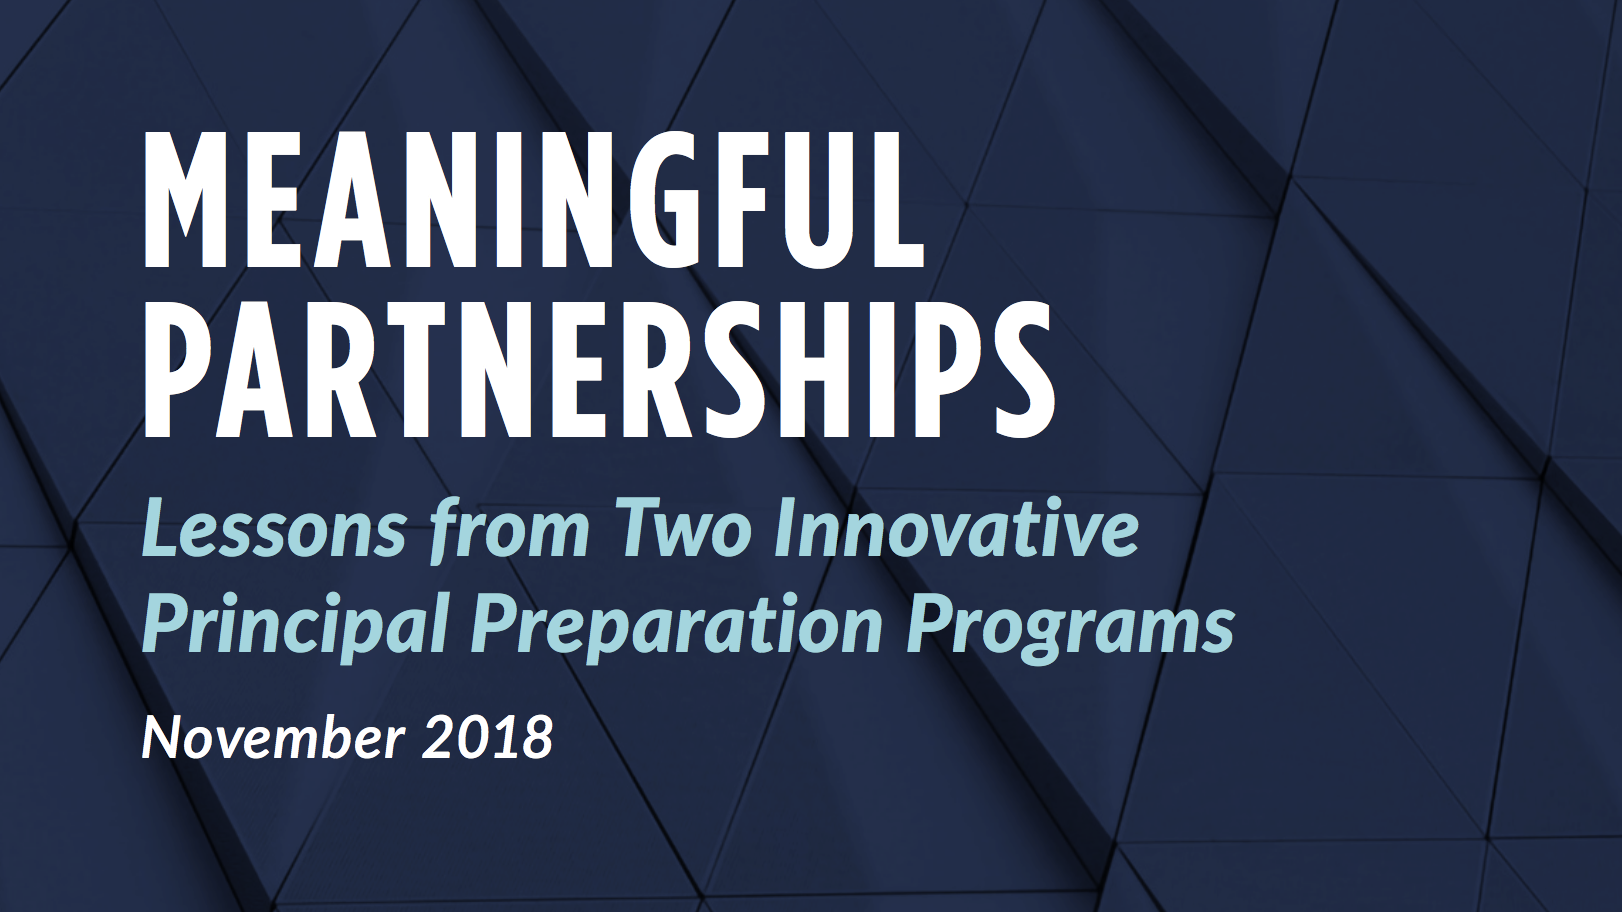 The cover of Meaningful Partnerships case study